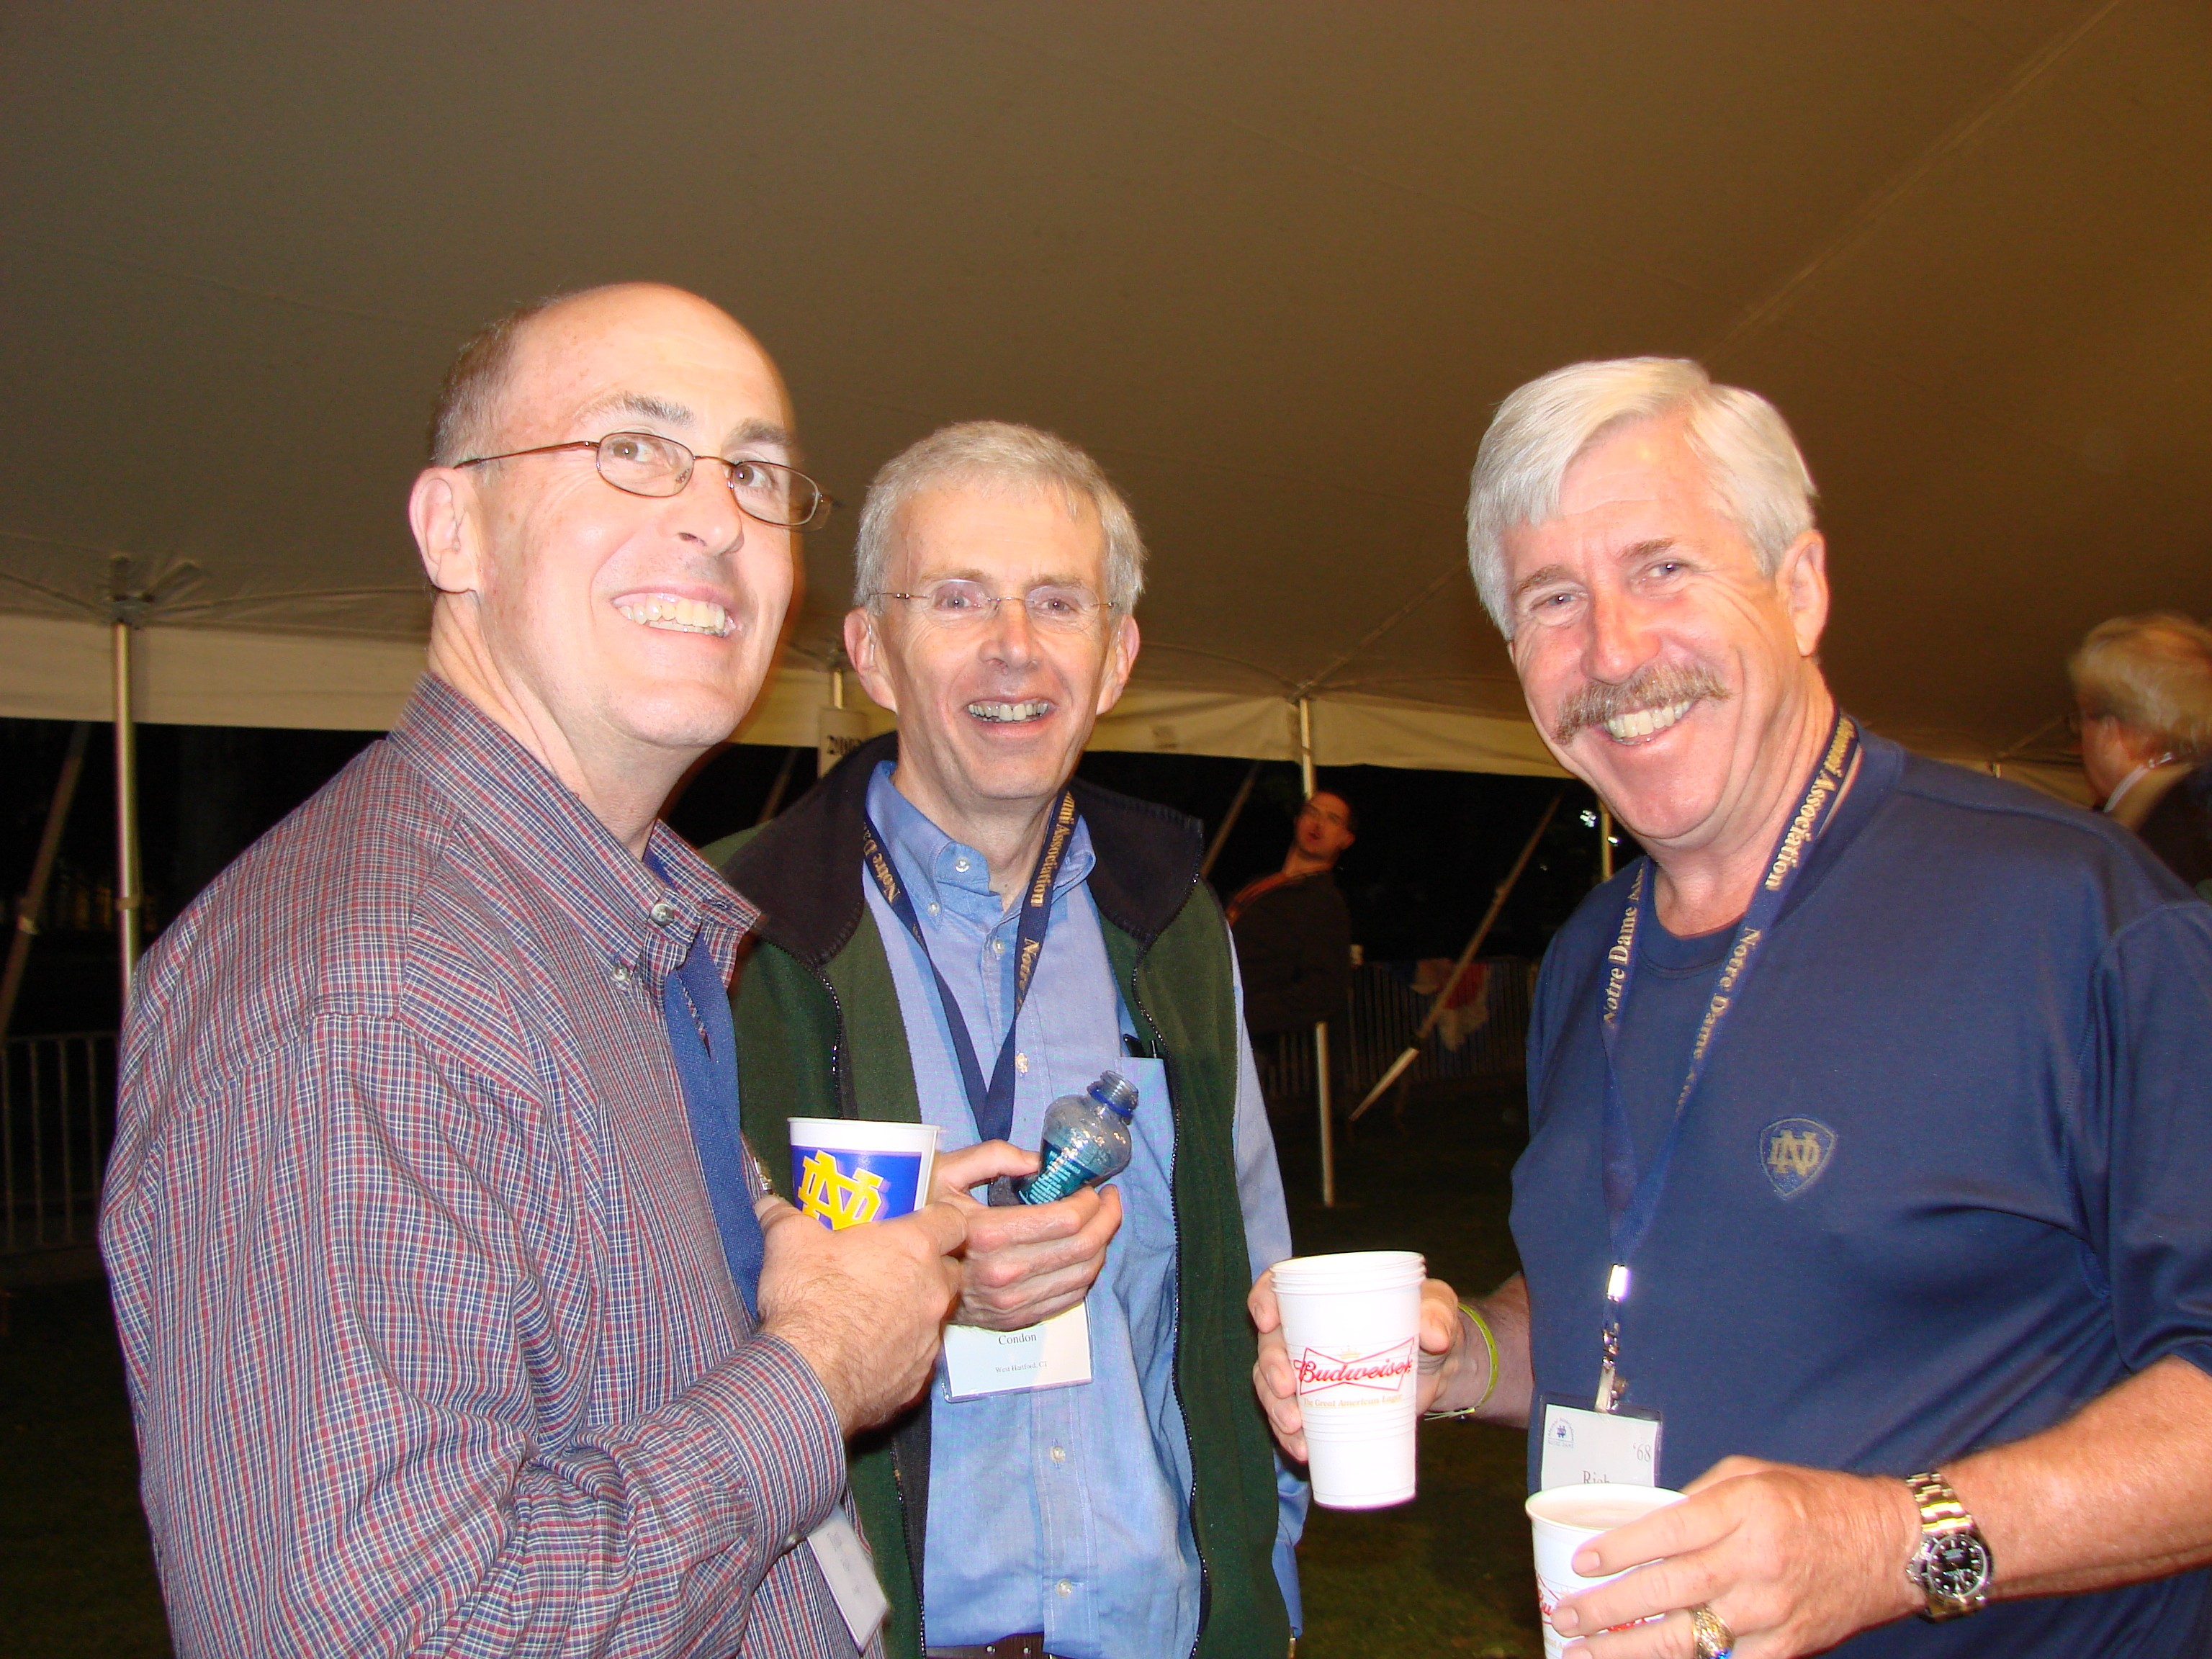 Tom Figel, Tom Condon and Rich Rogers